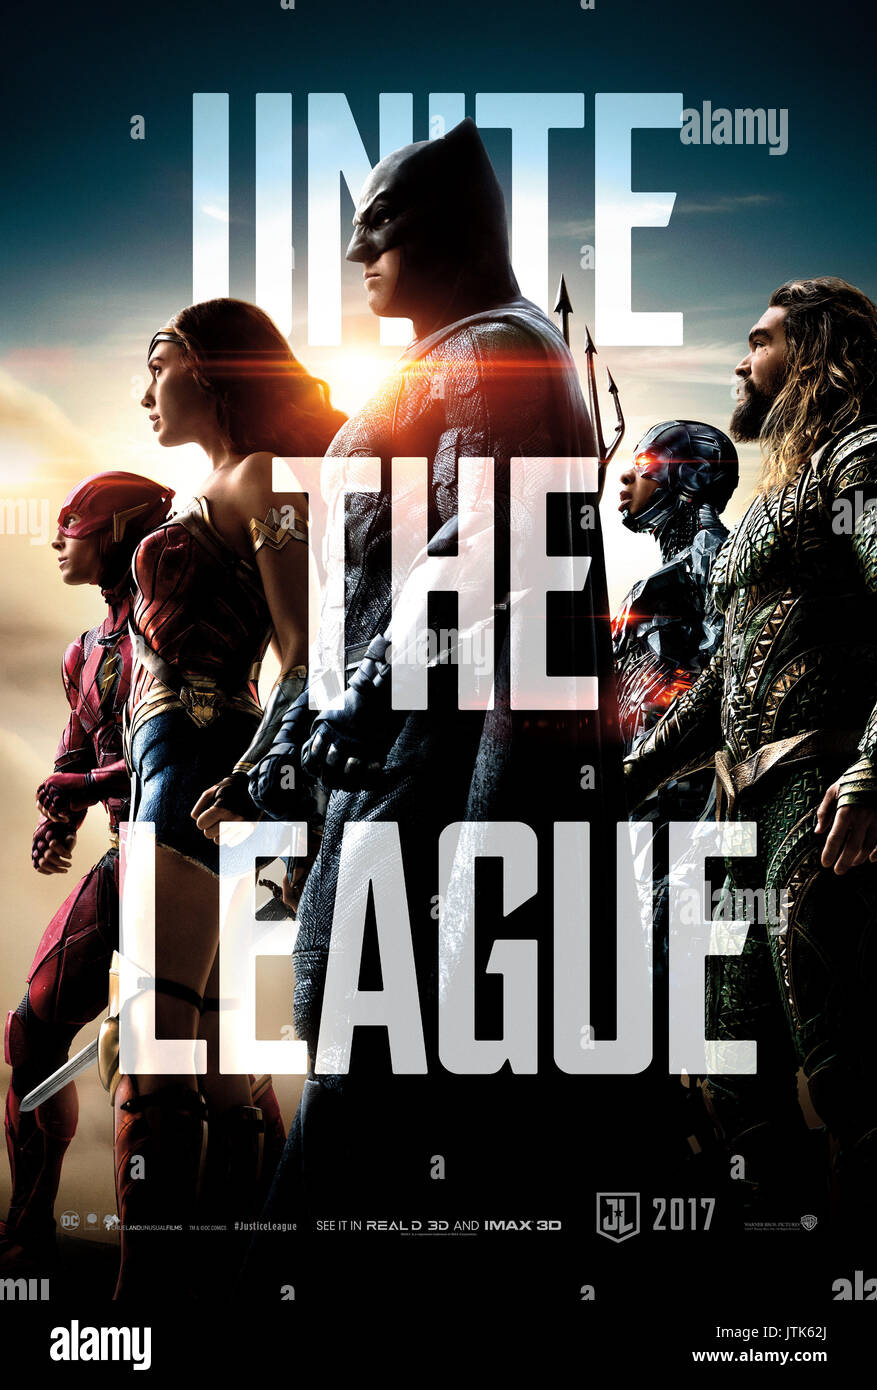 RELEASE DATE: November 17, 2017 TITLE: Justice League STUDIO: DC Entertainment DIRECTOR: Zack Snyder PLOT: Fueled by his restored faith in humanity and inspired by Superman's selfless act, Bruce Wayne enlists the help of his newfound ally, Diana Prince, to face an even greater enemy. STARRING: Ezra Miller as Barry Allen / The Flash, Ben Affleck as Bruce Wayne / Batman, Gal Gadot as Diana Prince / Wonder Woman, Ray Fisher as Victor Stone / Cyborg, Jason Momoa as Arthur Curry / Aquaman poster art. (Credit Image: © DC Entertainment/Entertainment Pictures) - Stock Image